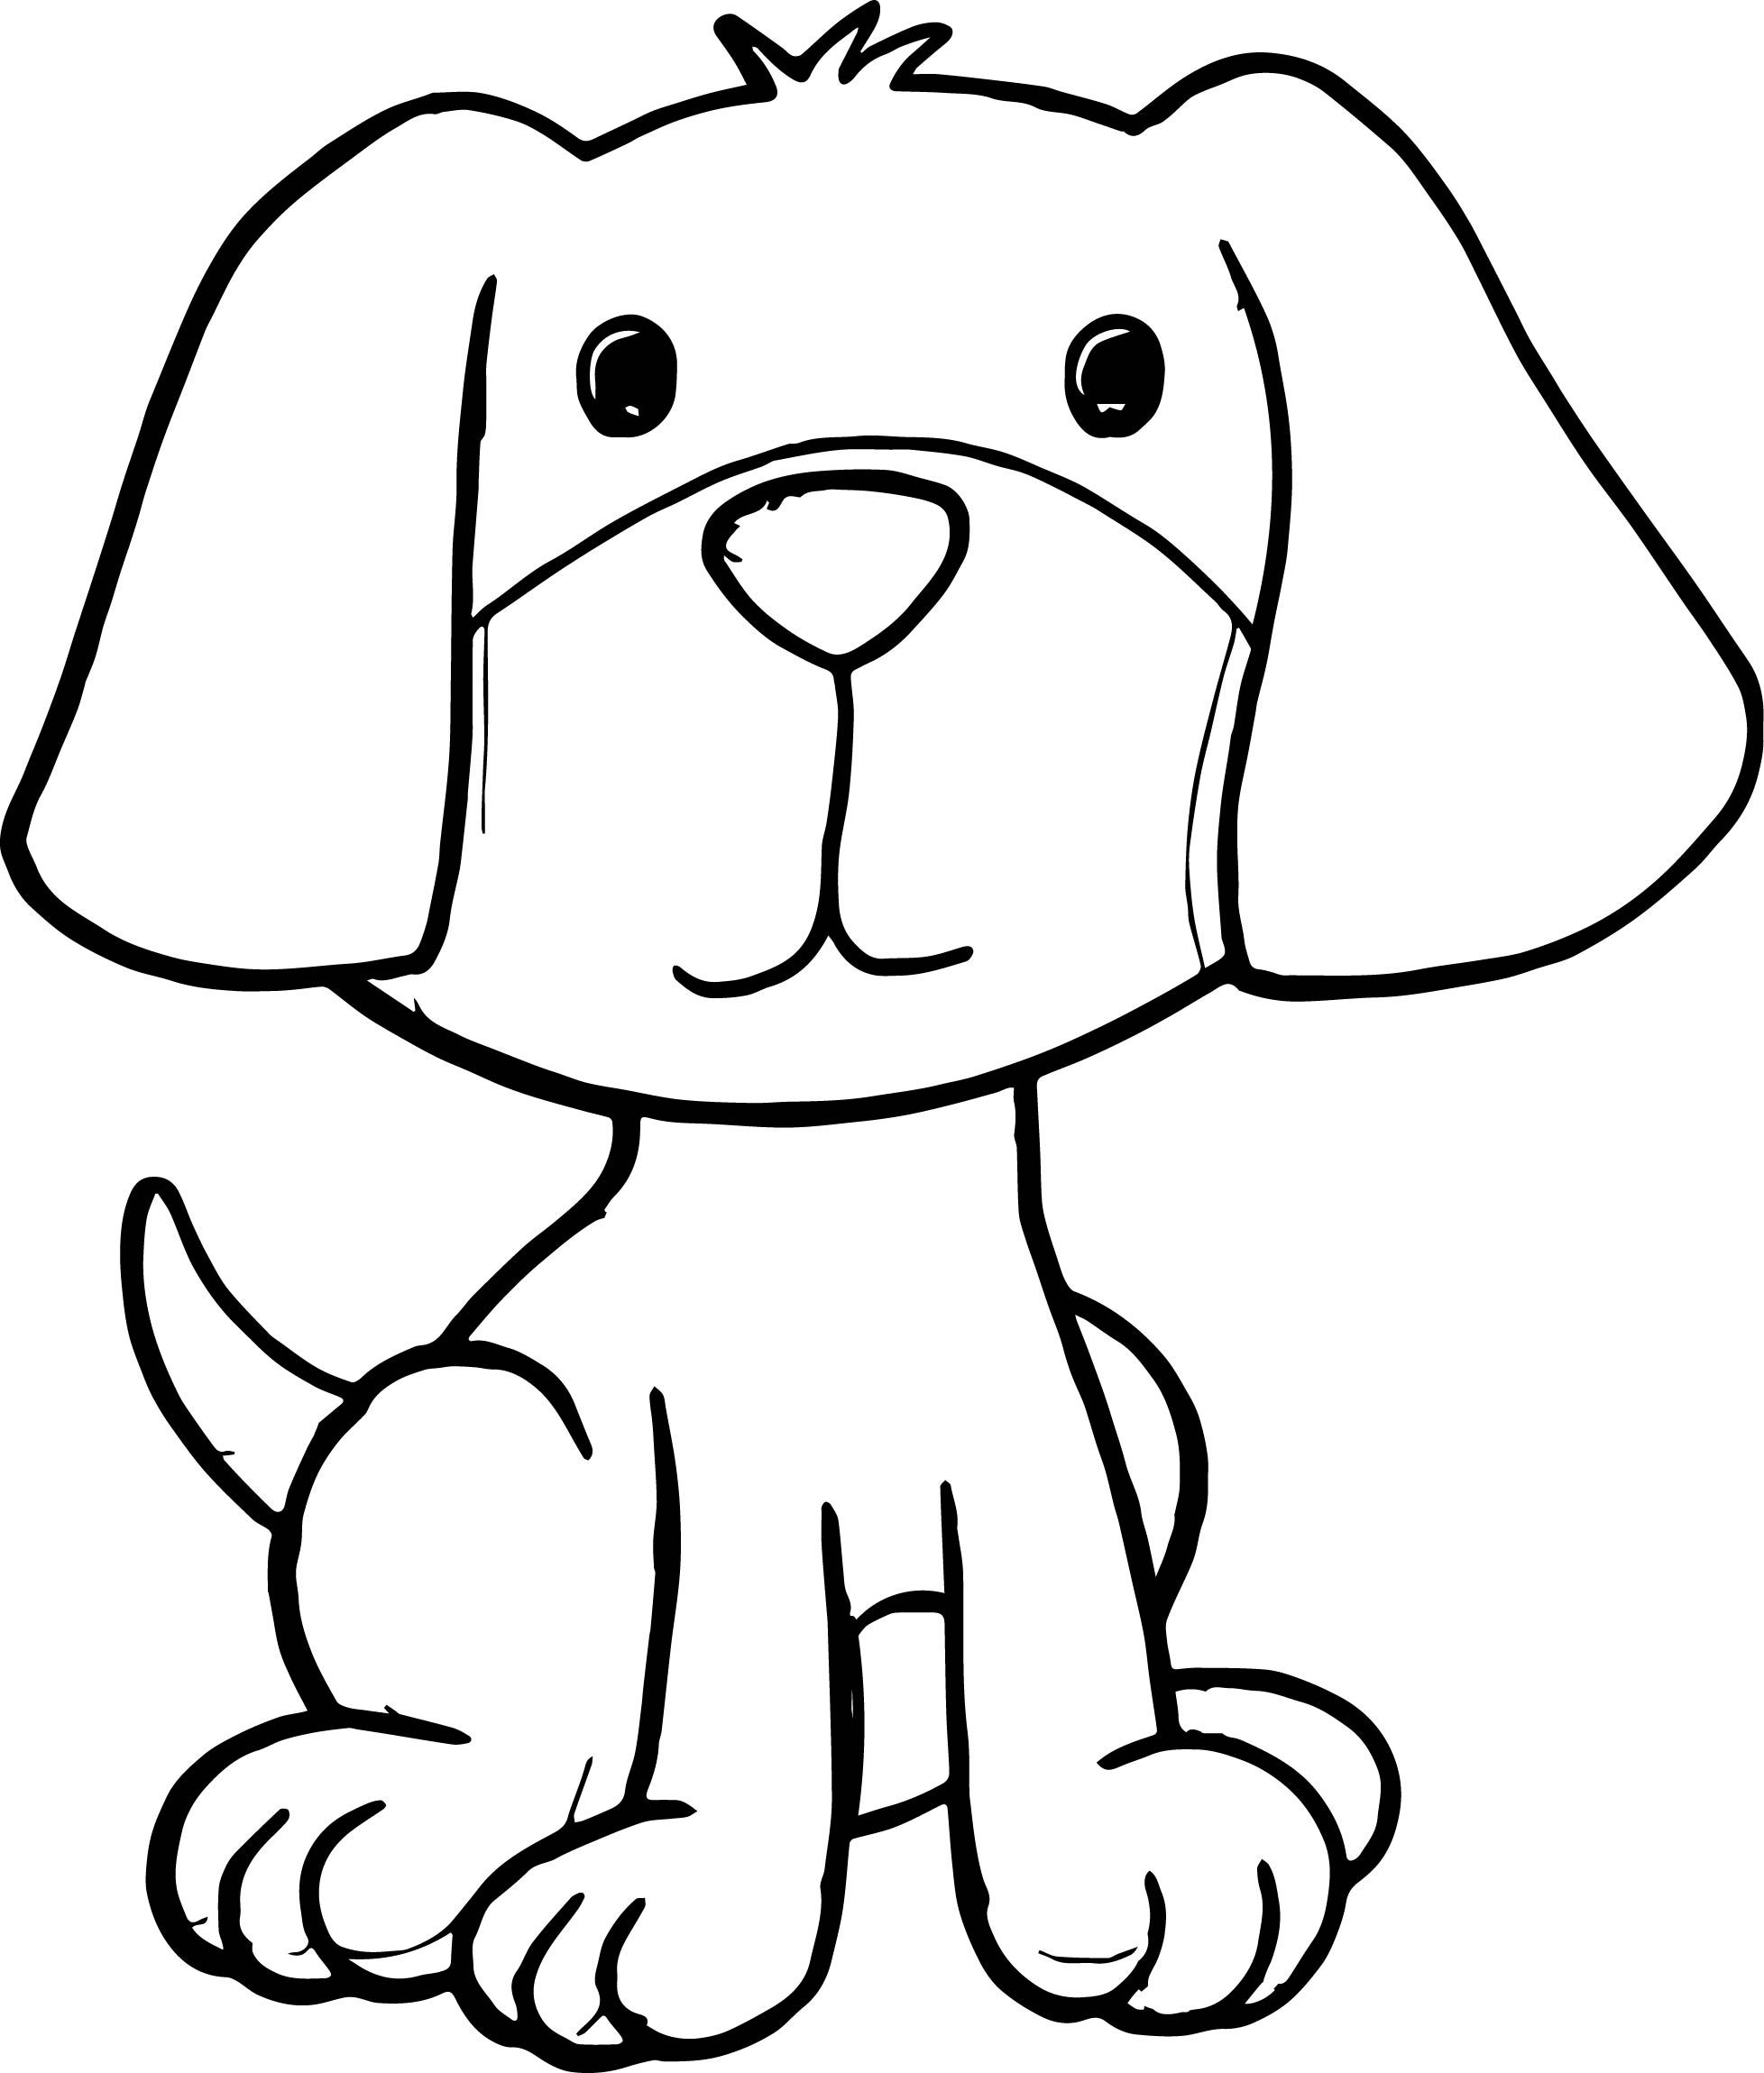 coloring pictures of baby dogs great puppy coloring page free coloring pages online pictures coloring of dogs baby